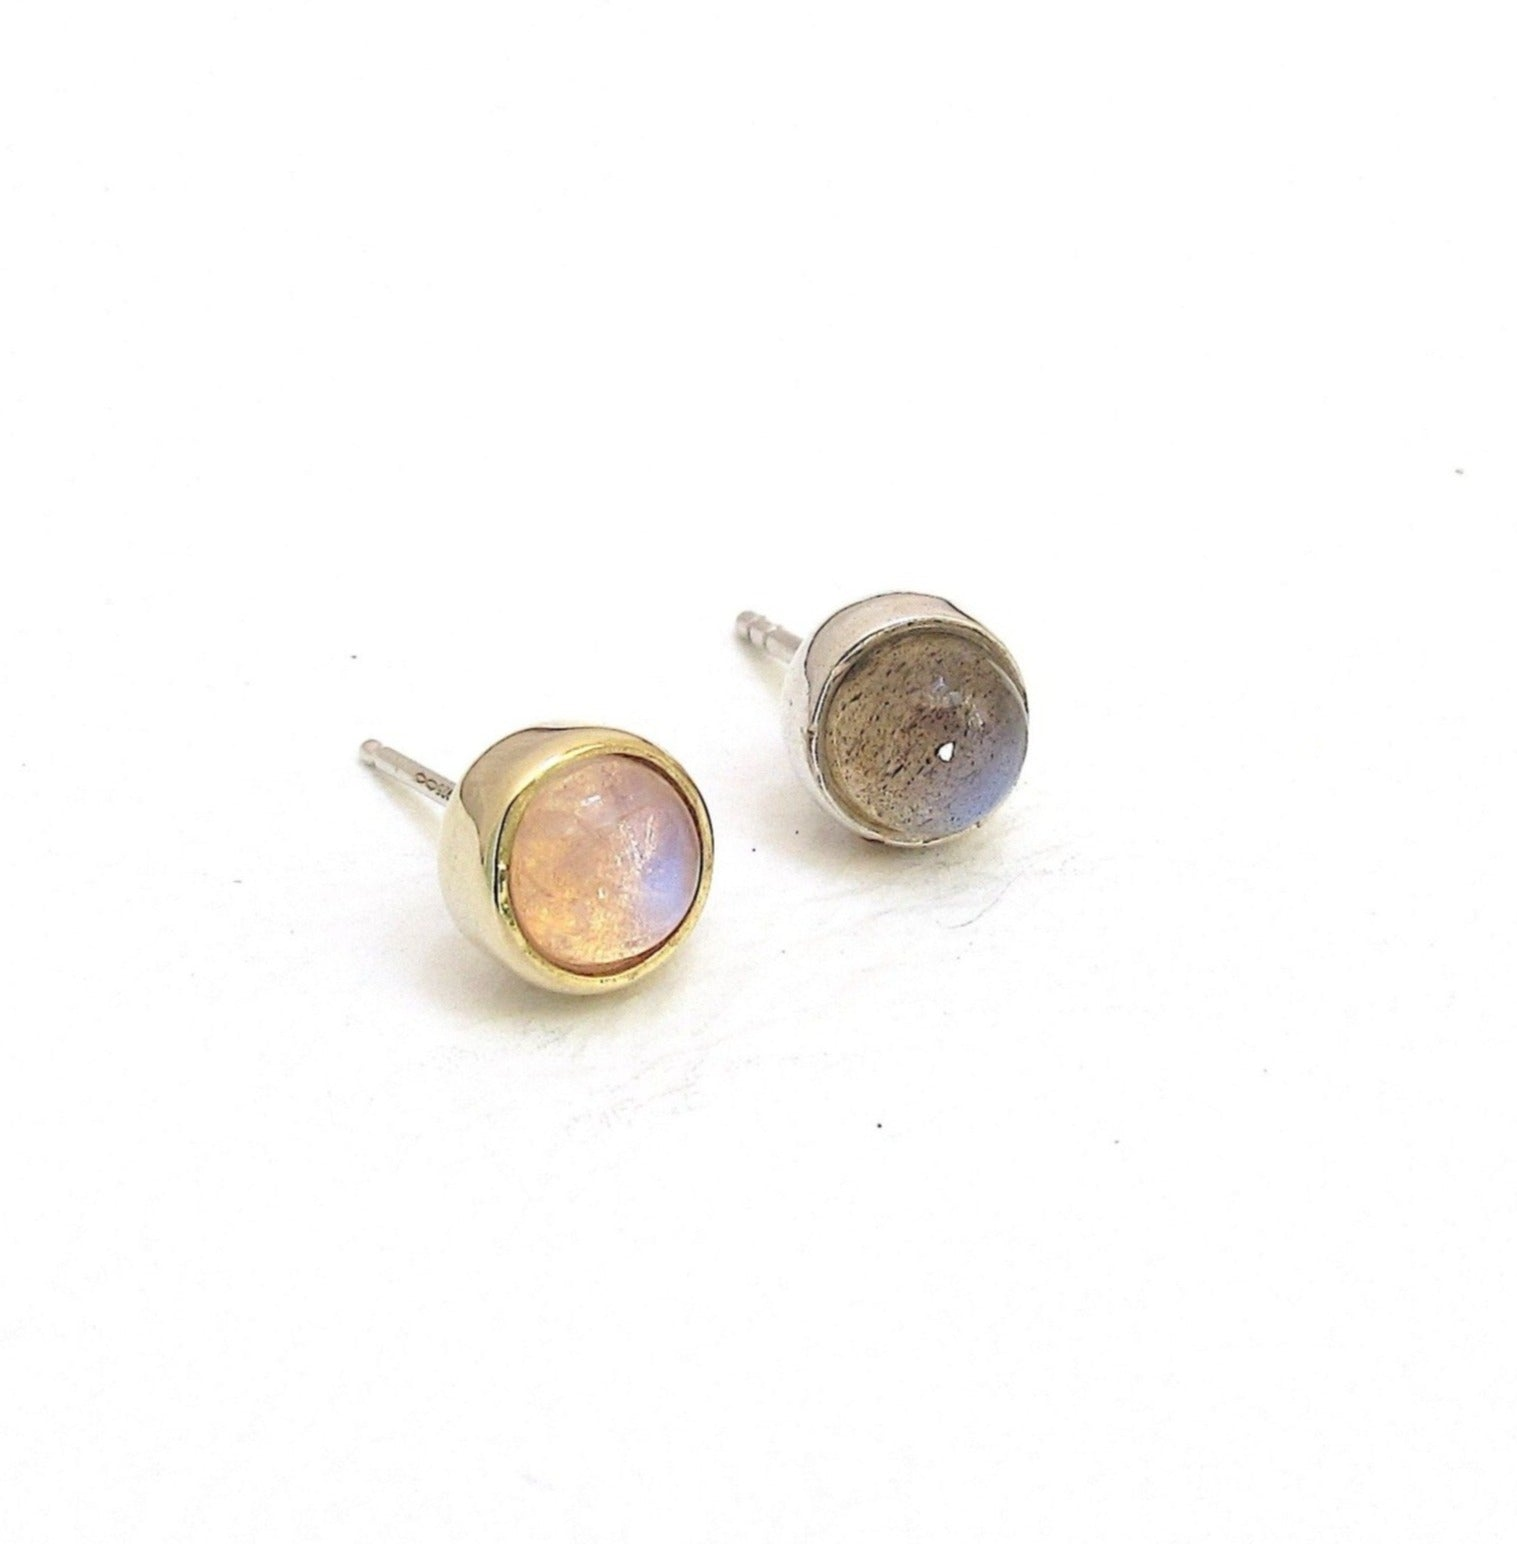 Vine moonstone stud earrings, Vine Labradorite stud earrings